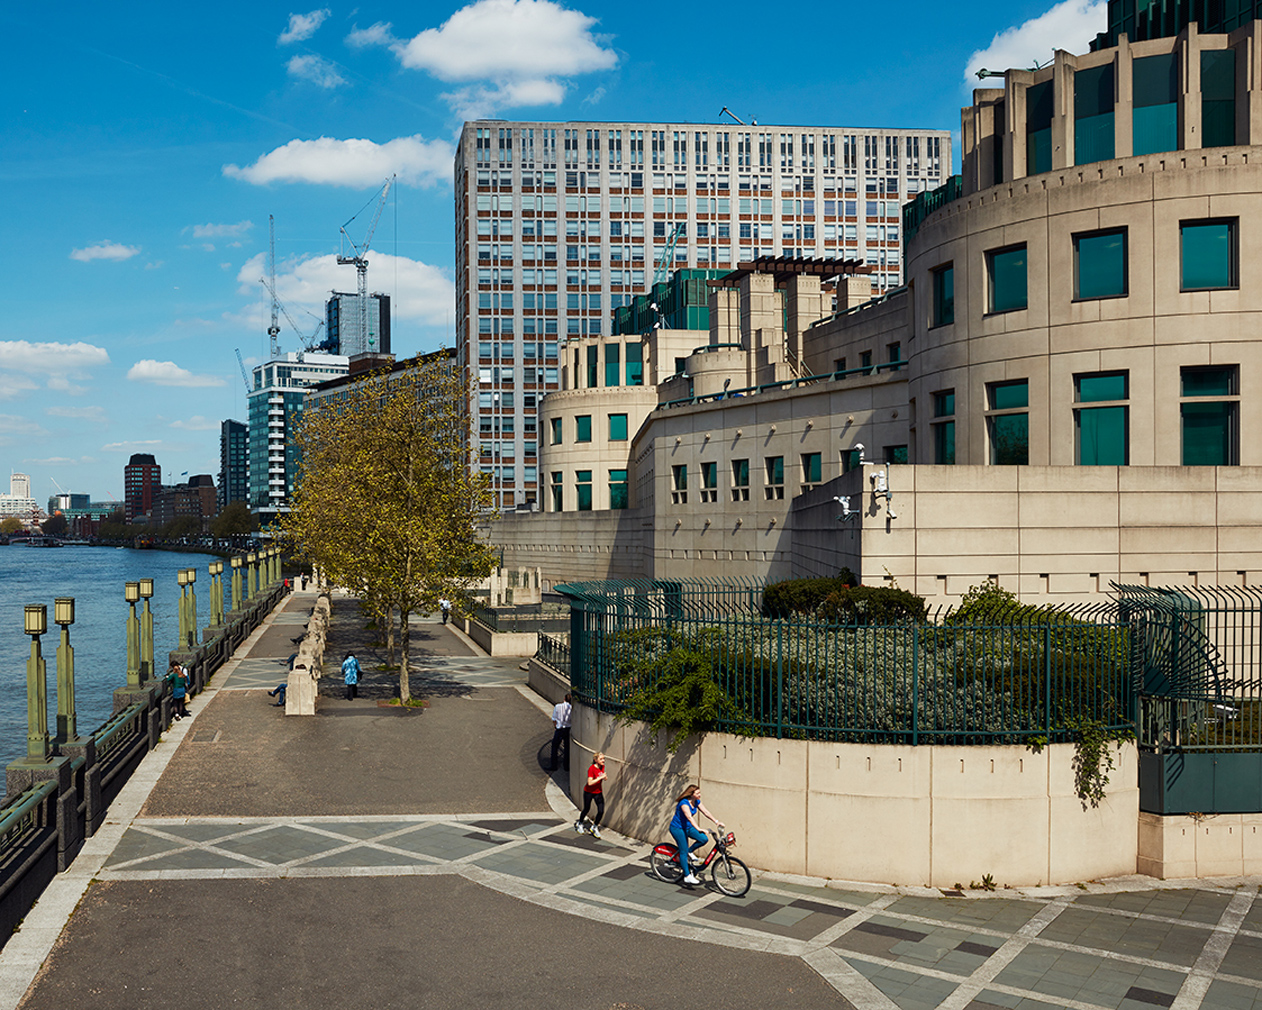 MI6 Building designed by Sir Terry Farrell. Photography: Rob Low for <em>The Spaces</em>